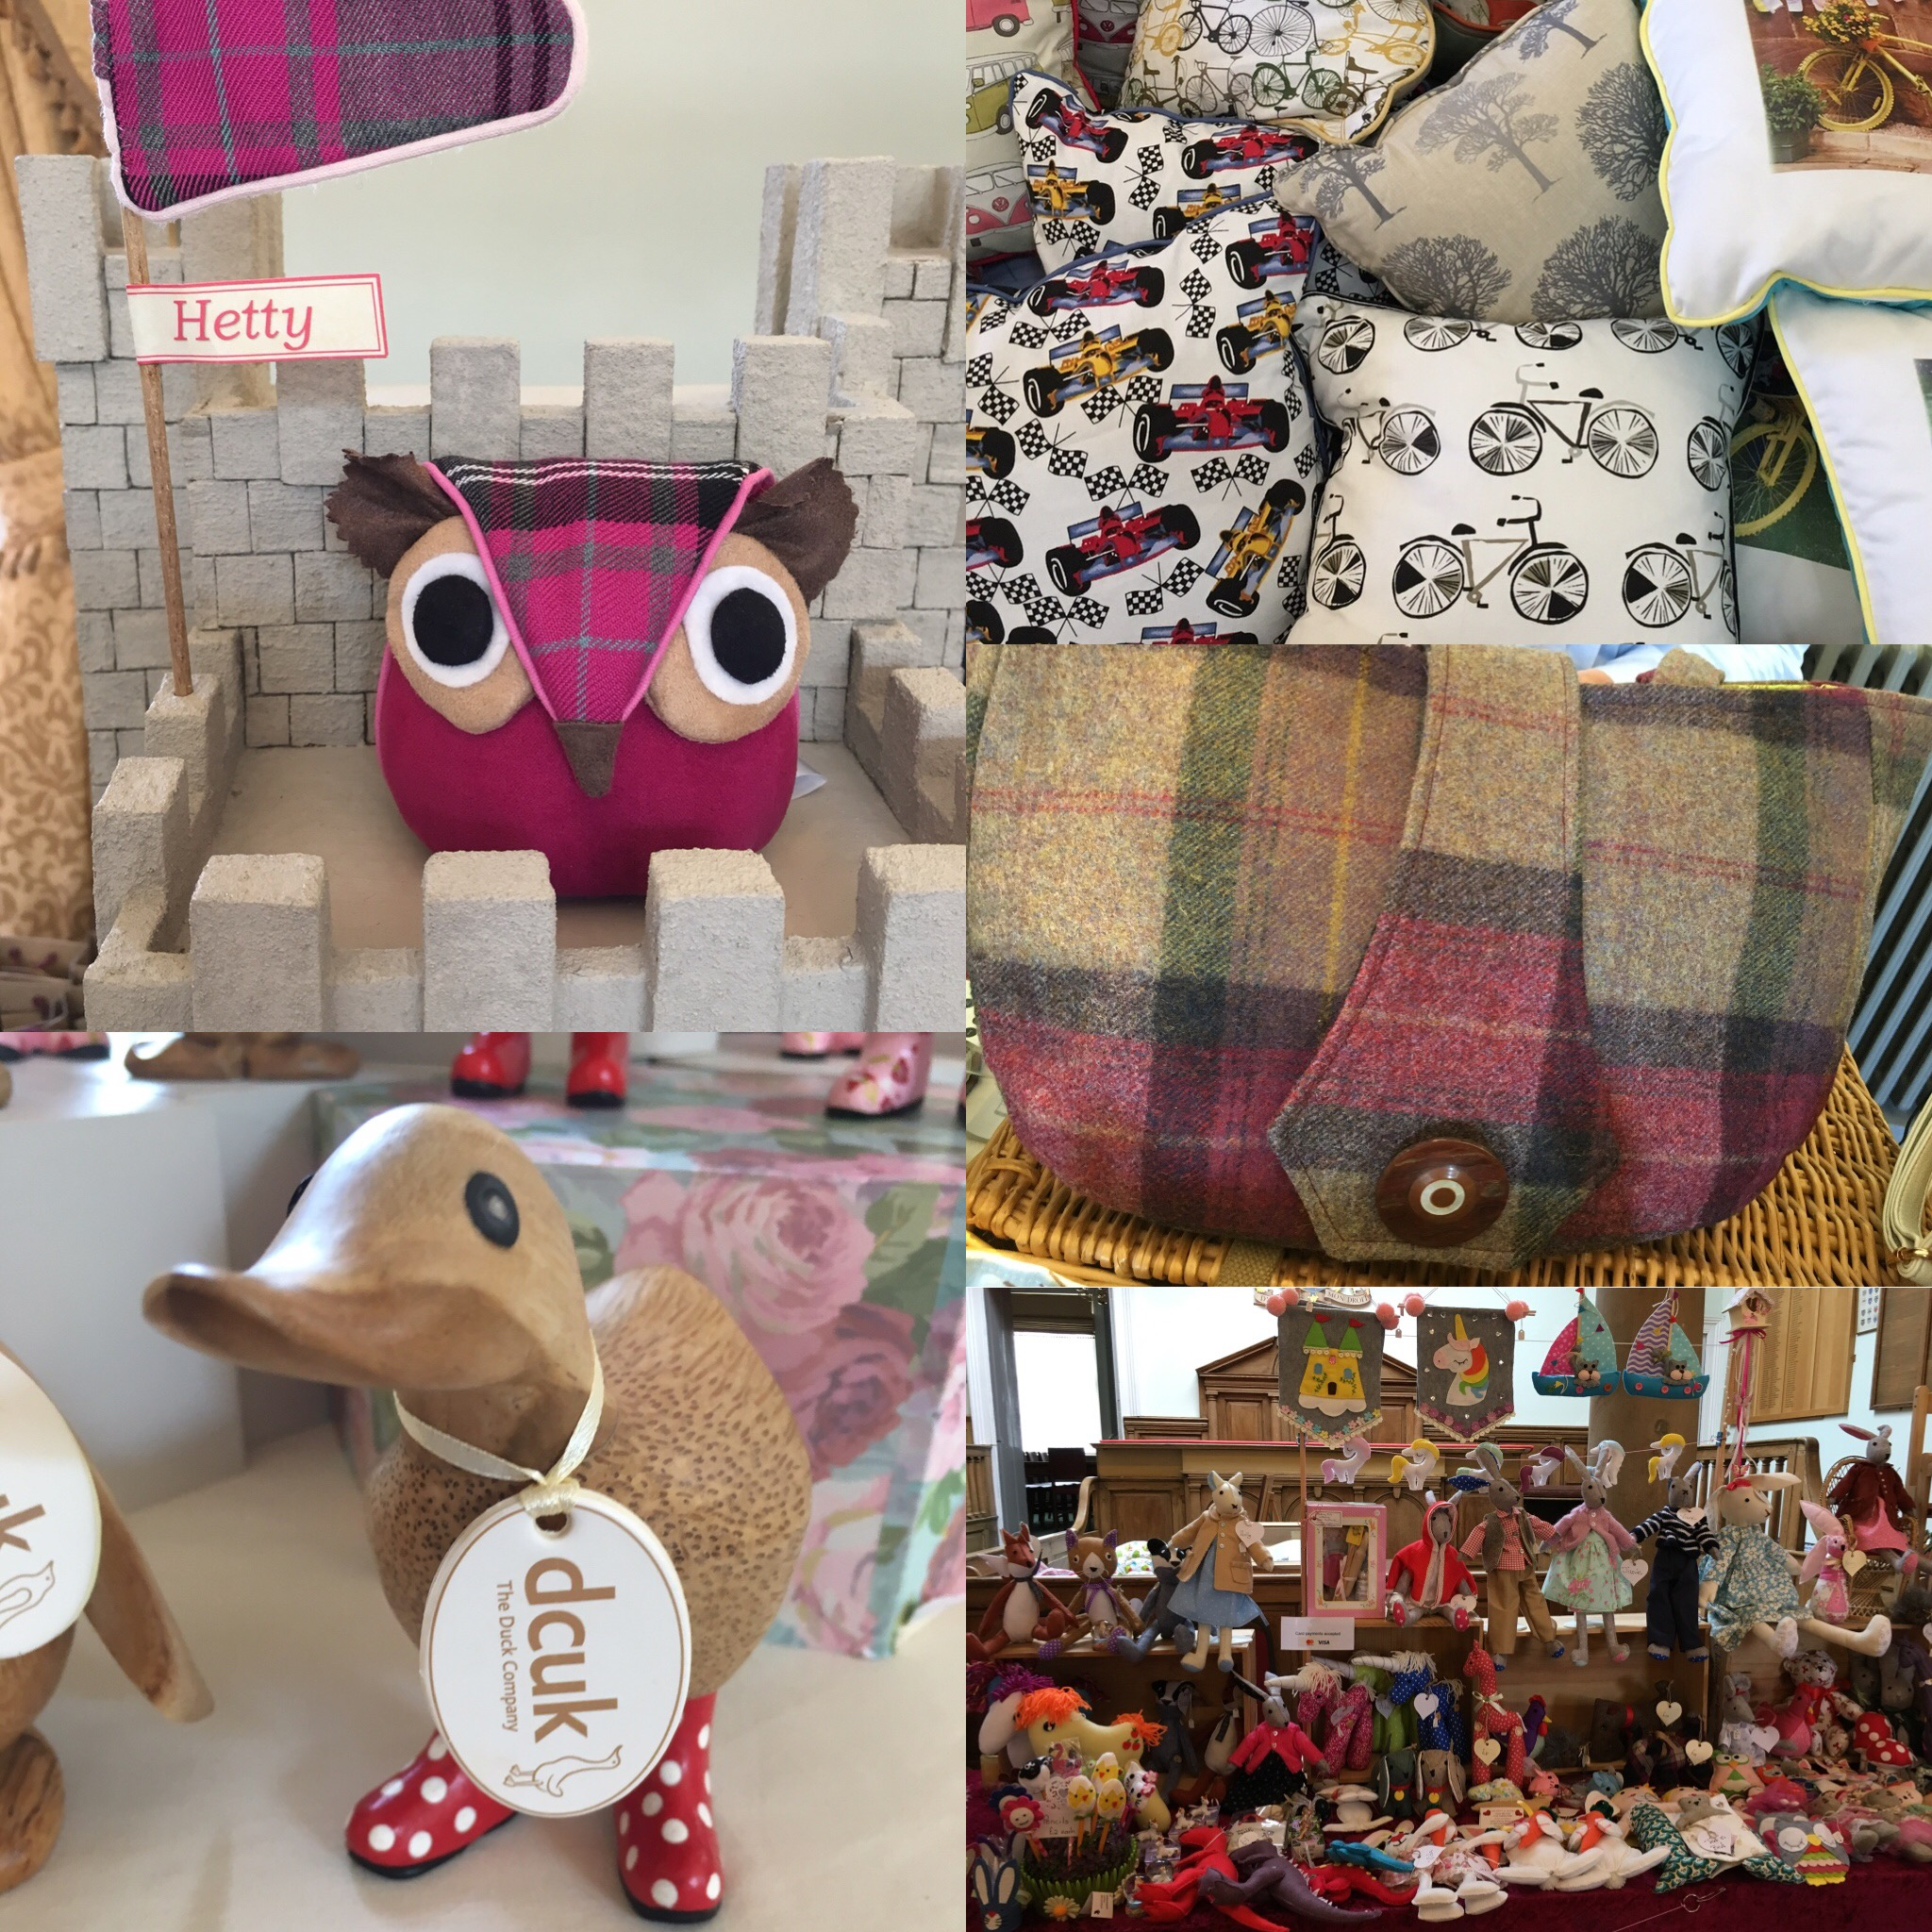 A pink fabric owl doorstop, a selection of cushions, a DCUK duck, a tweed handbag and handmade toys & gifts